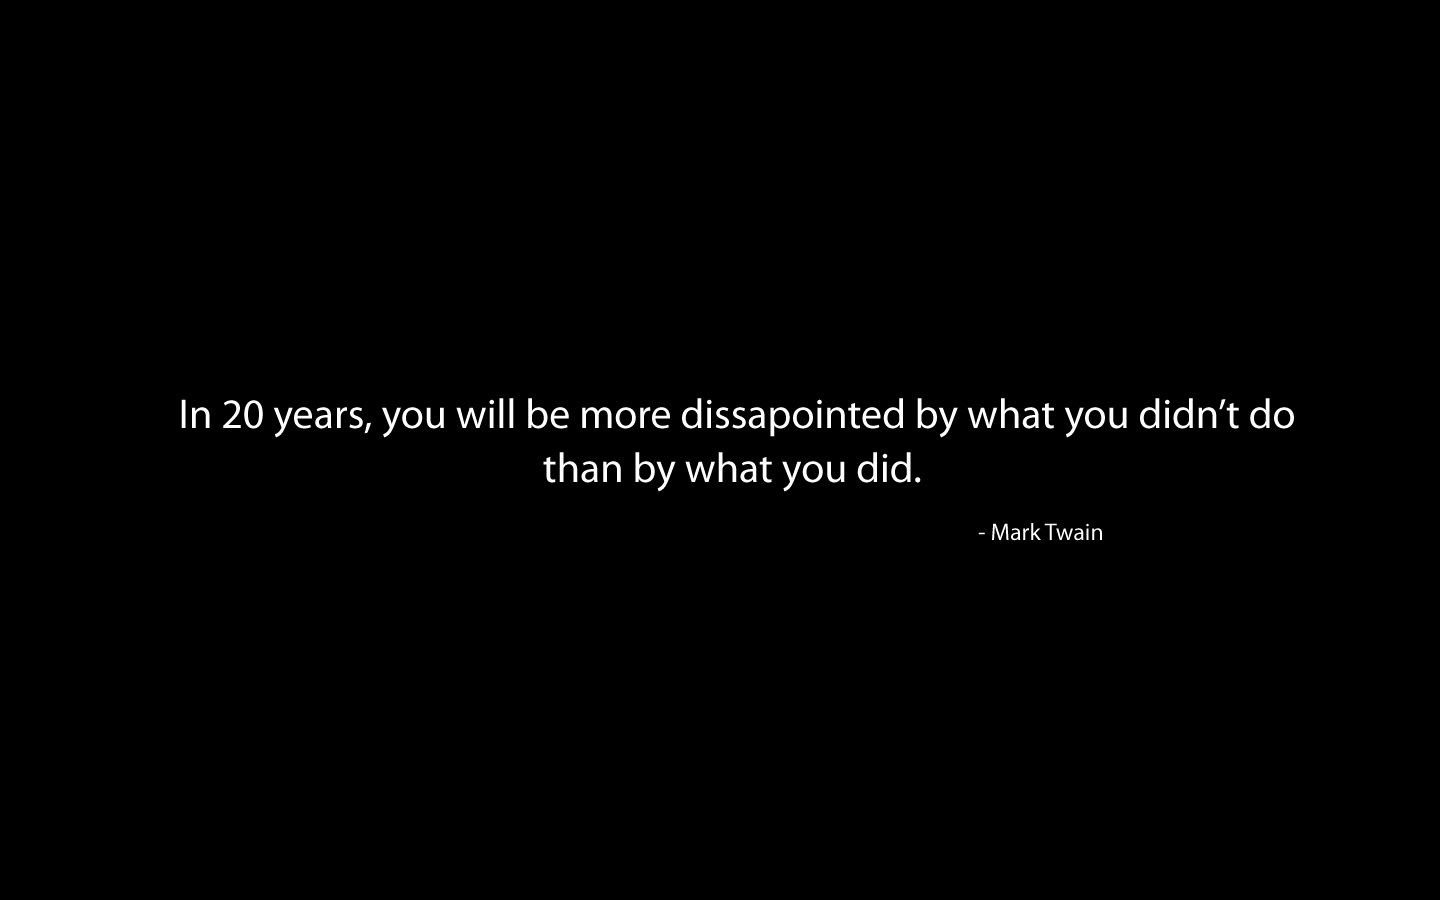 Quotes Mark Twain inspirational HD Wallpaper